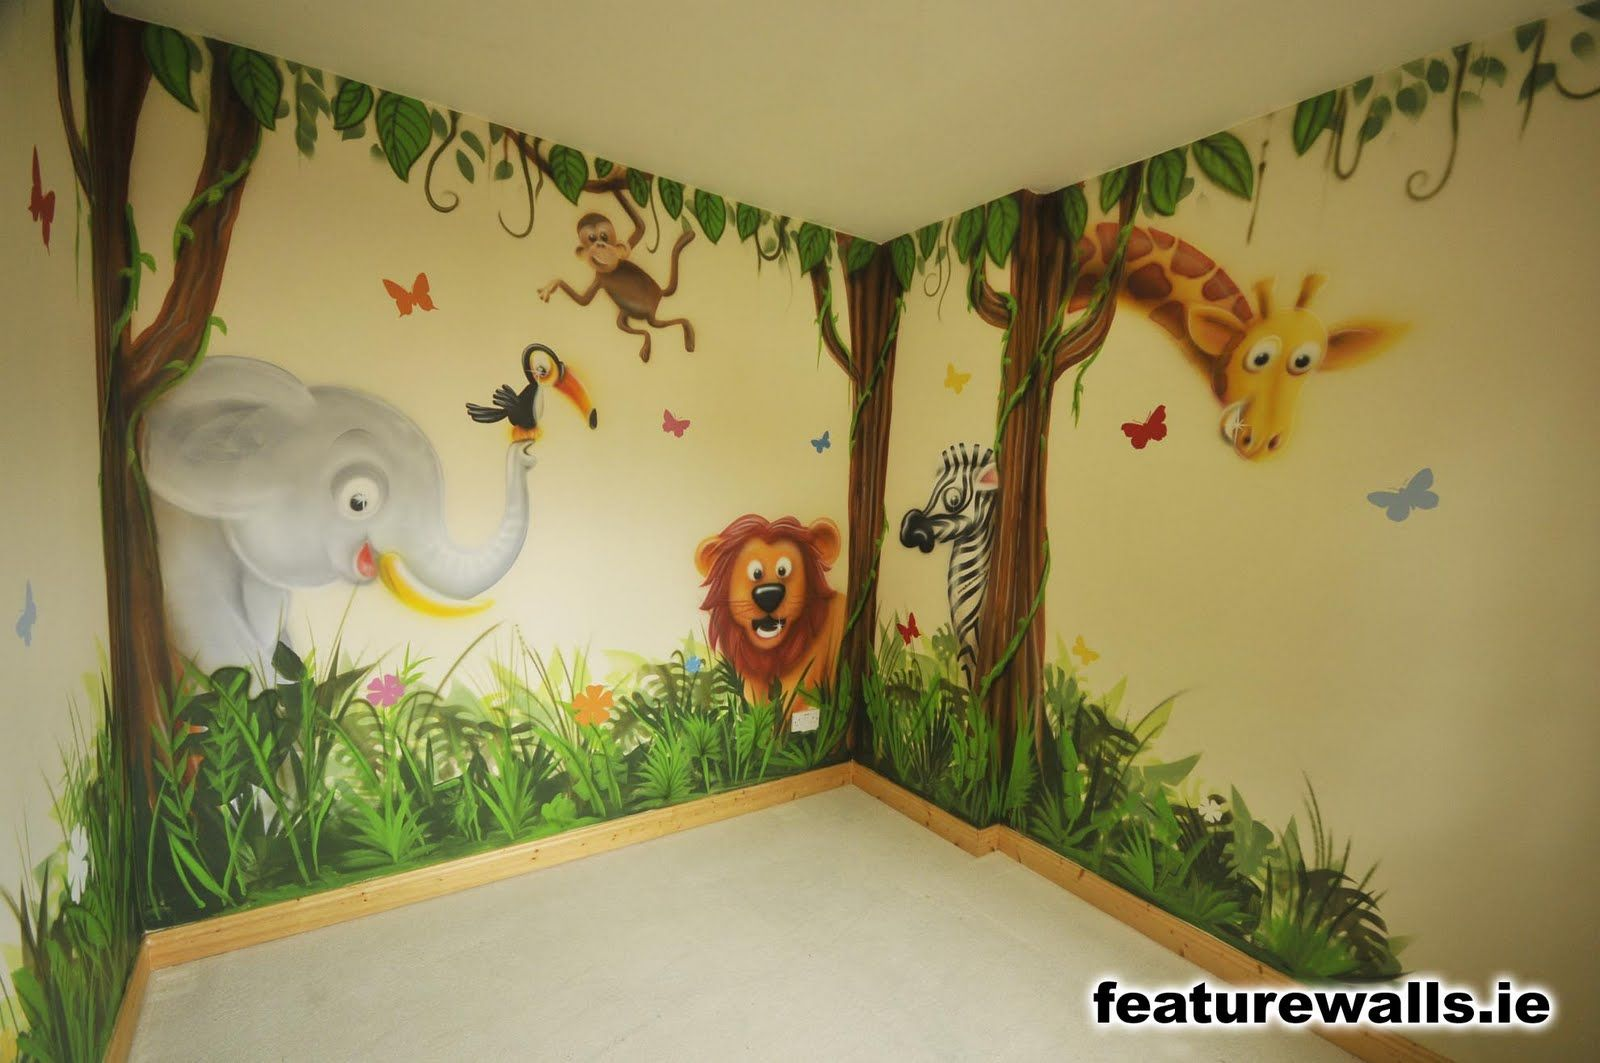 Jungle Murals for Kids Rooms, mural bedroom ideas - GarryHome | Art ...